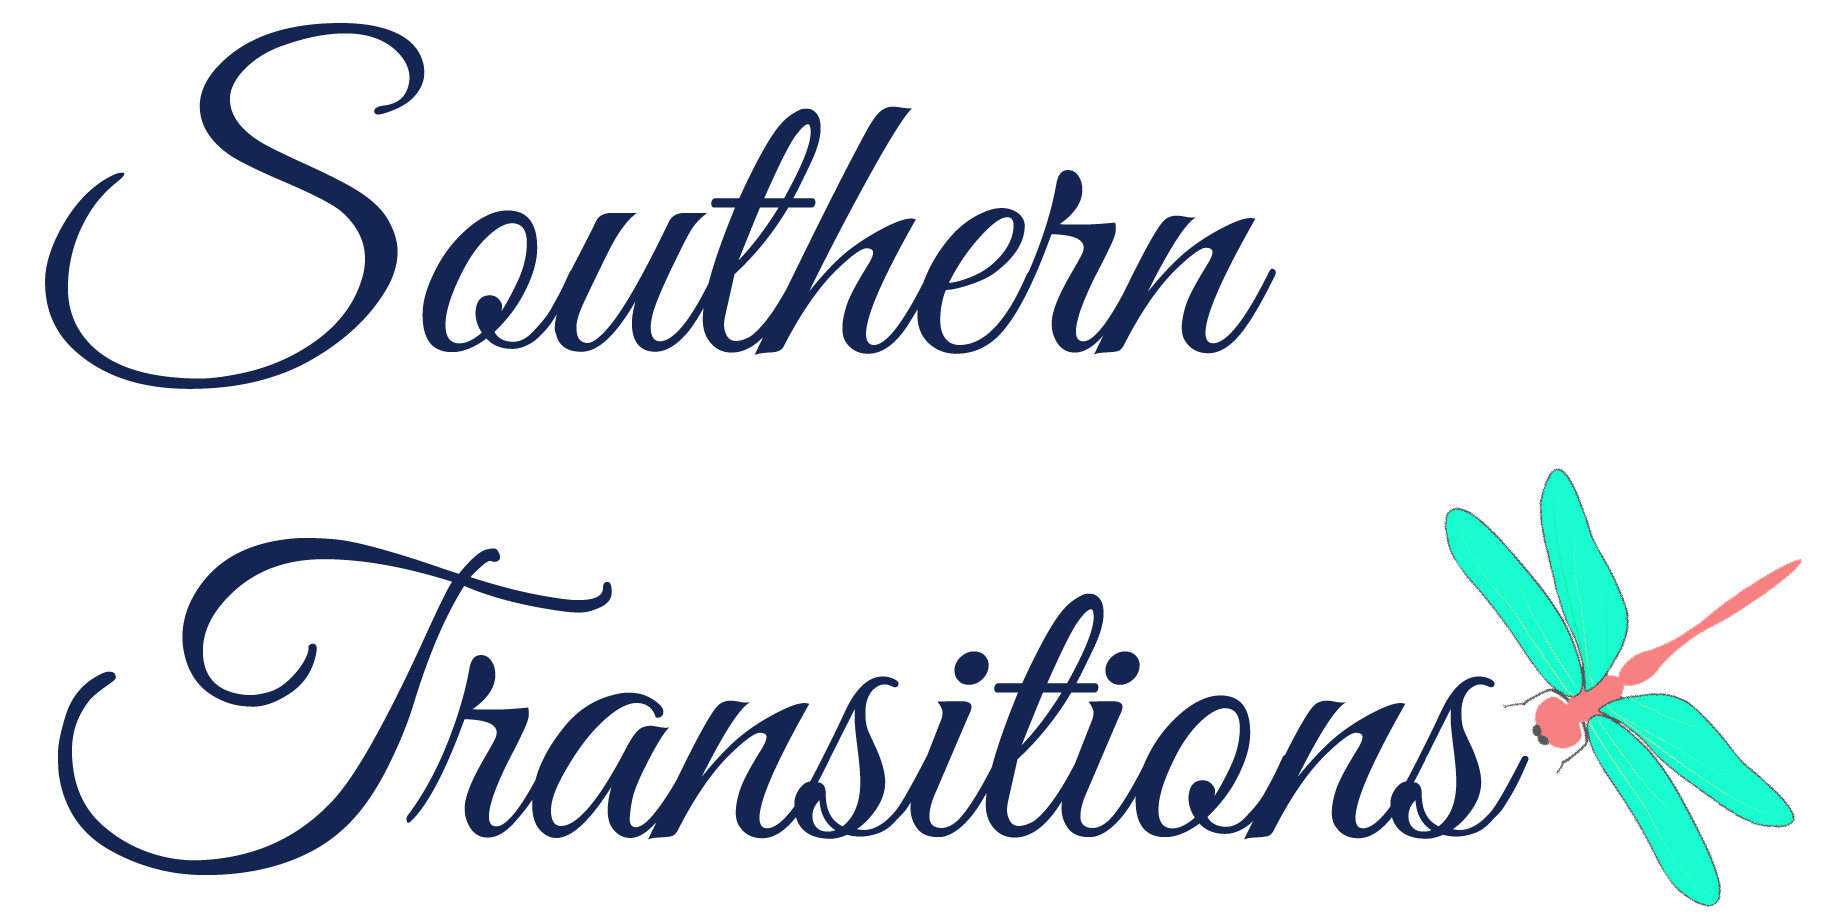 Southern Transitions